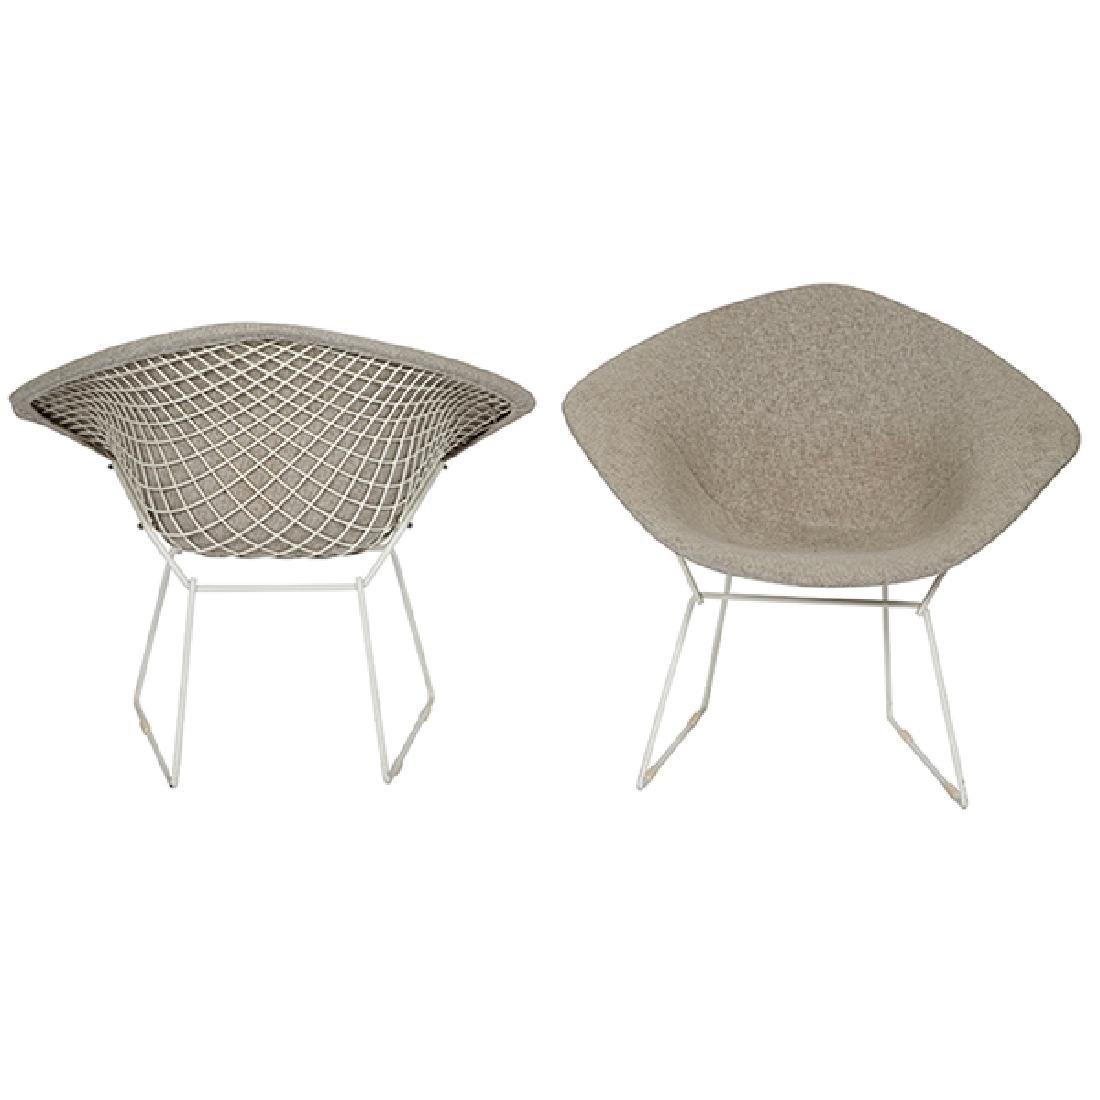 Harry Bertoia (1915-1970) for Knoll Diamond chairs pair